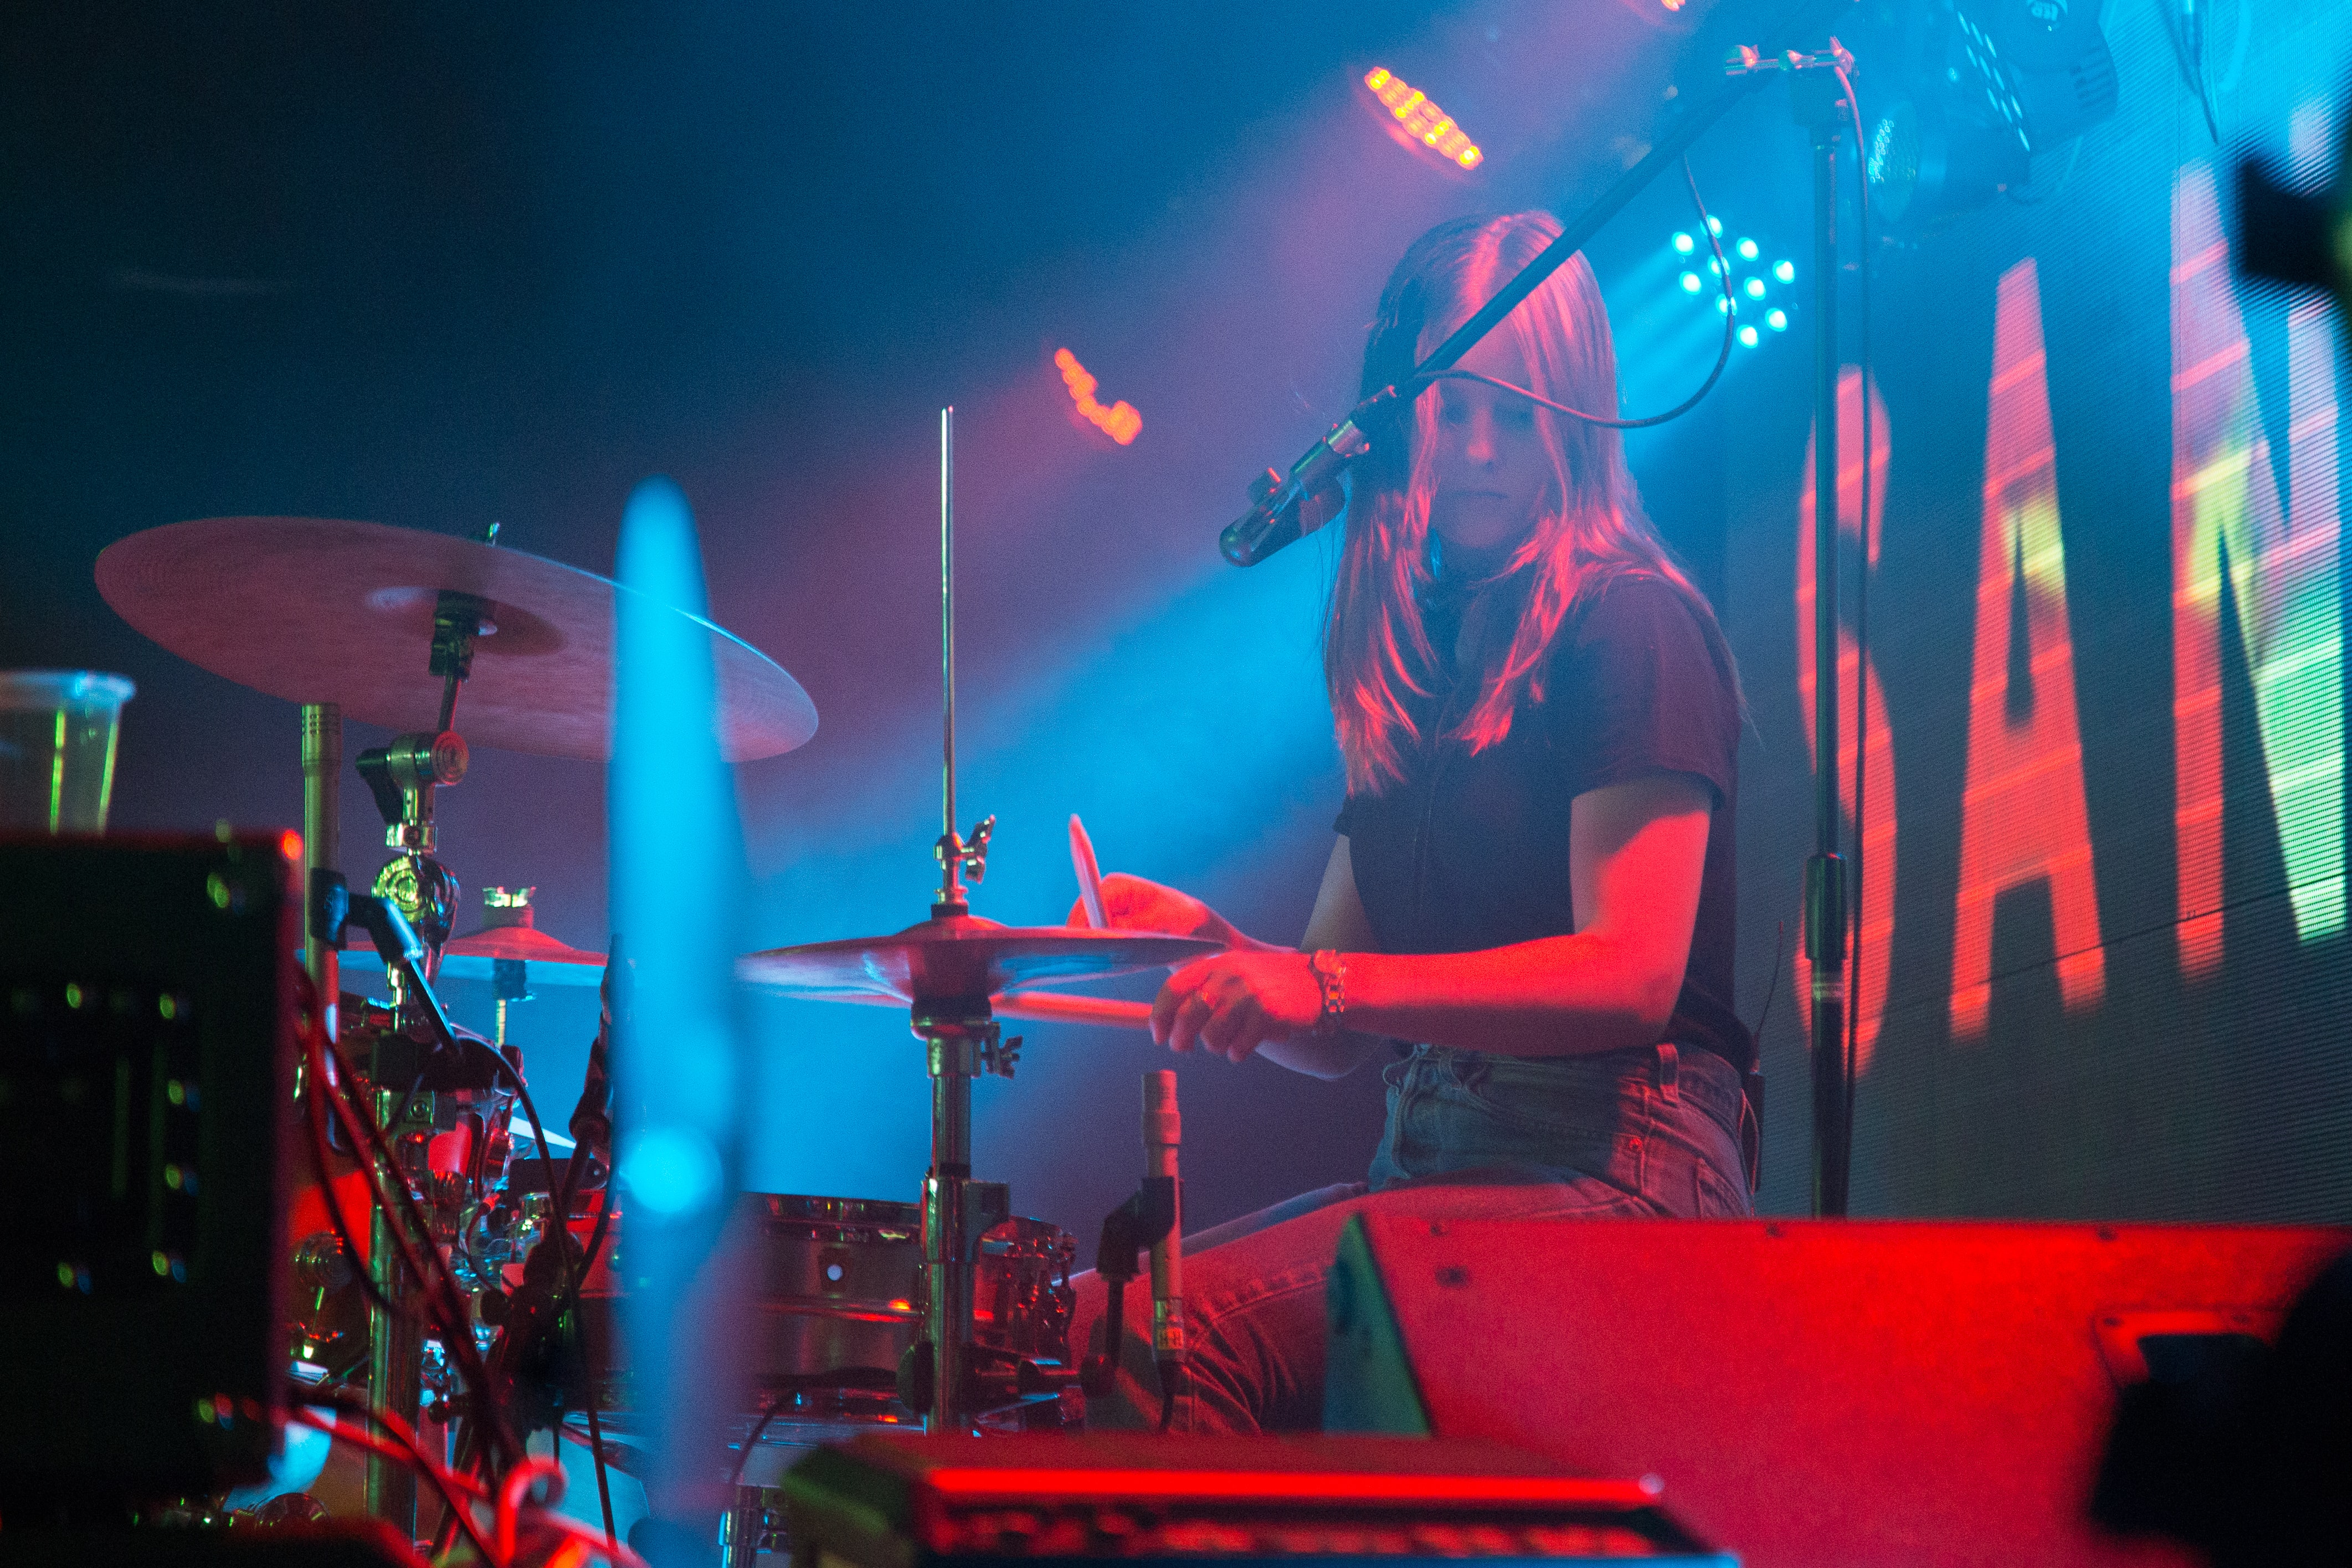 Woman plays drums in blue and red stage light during a show